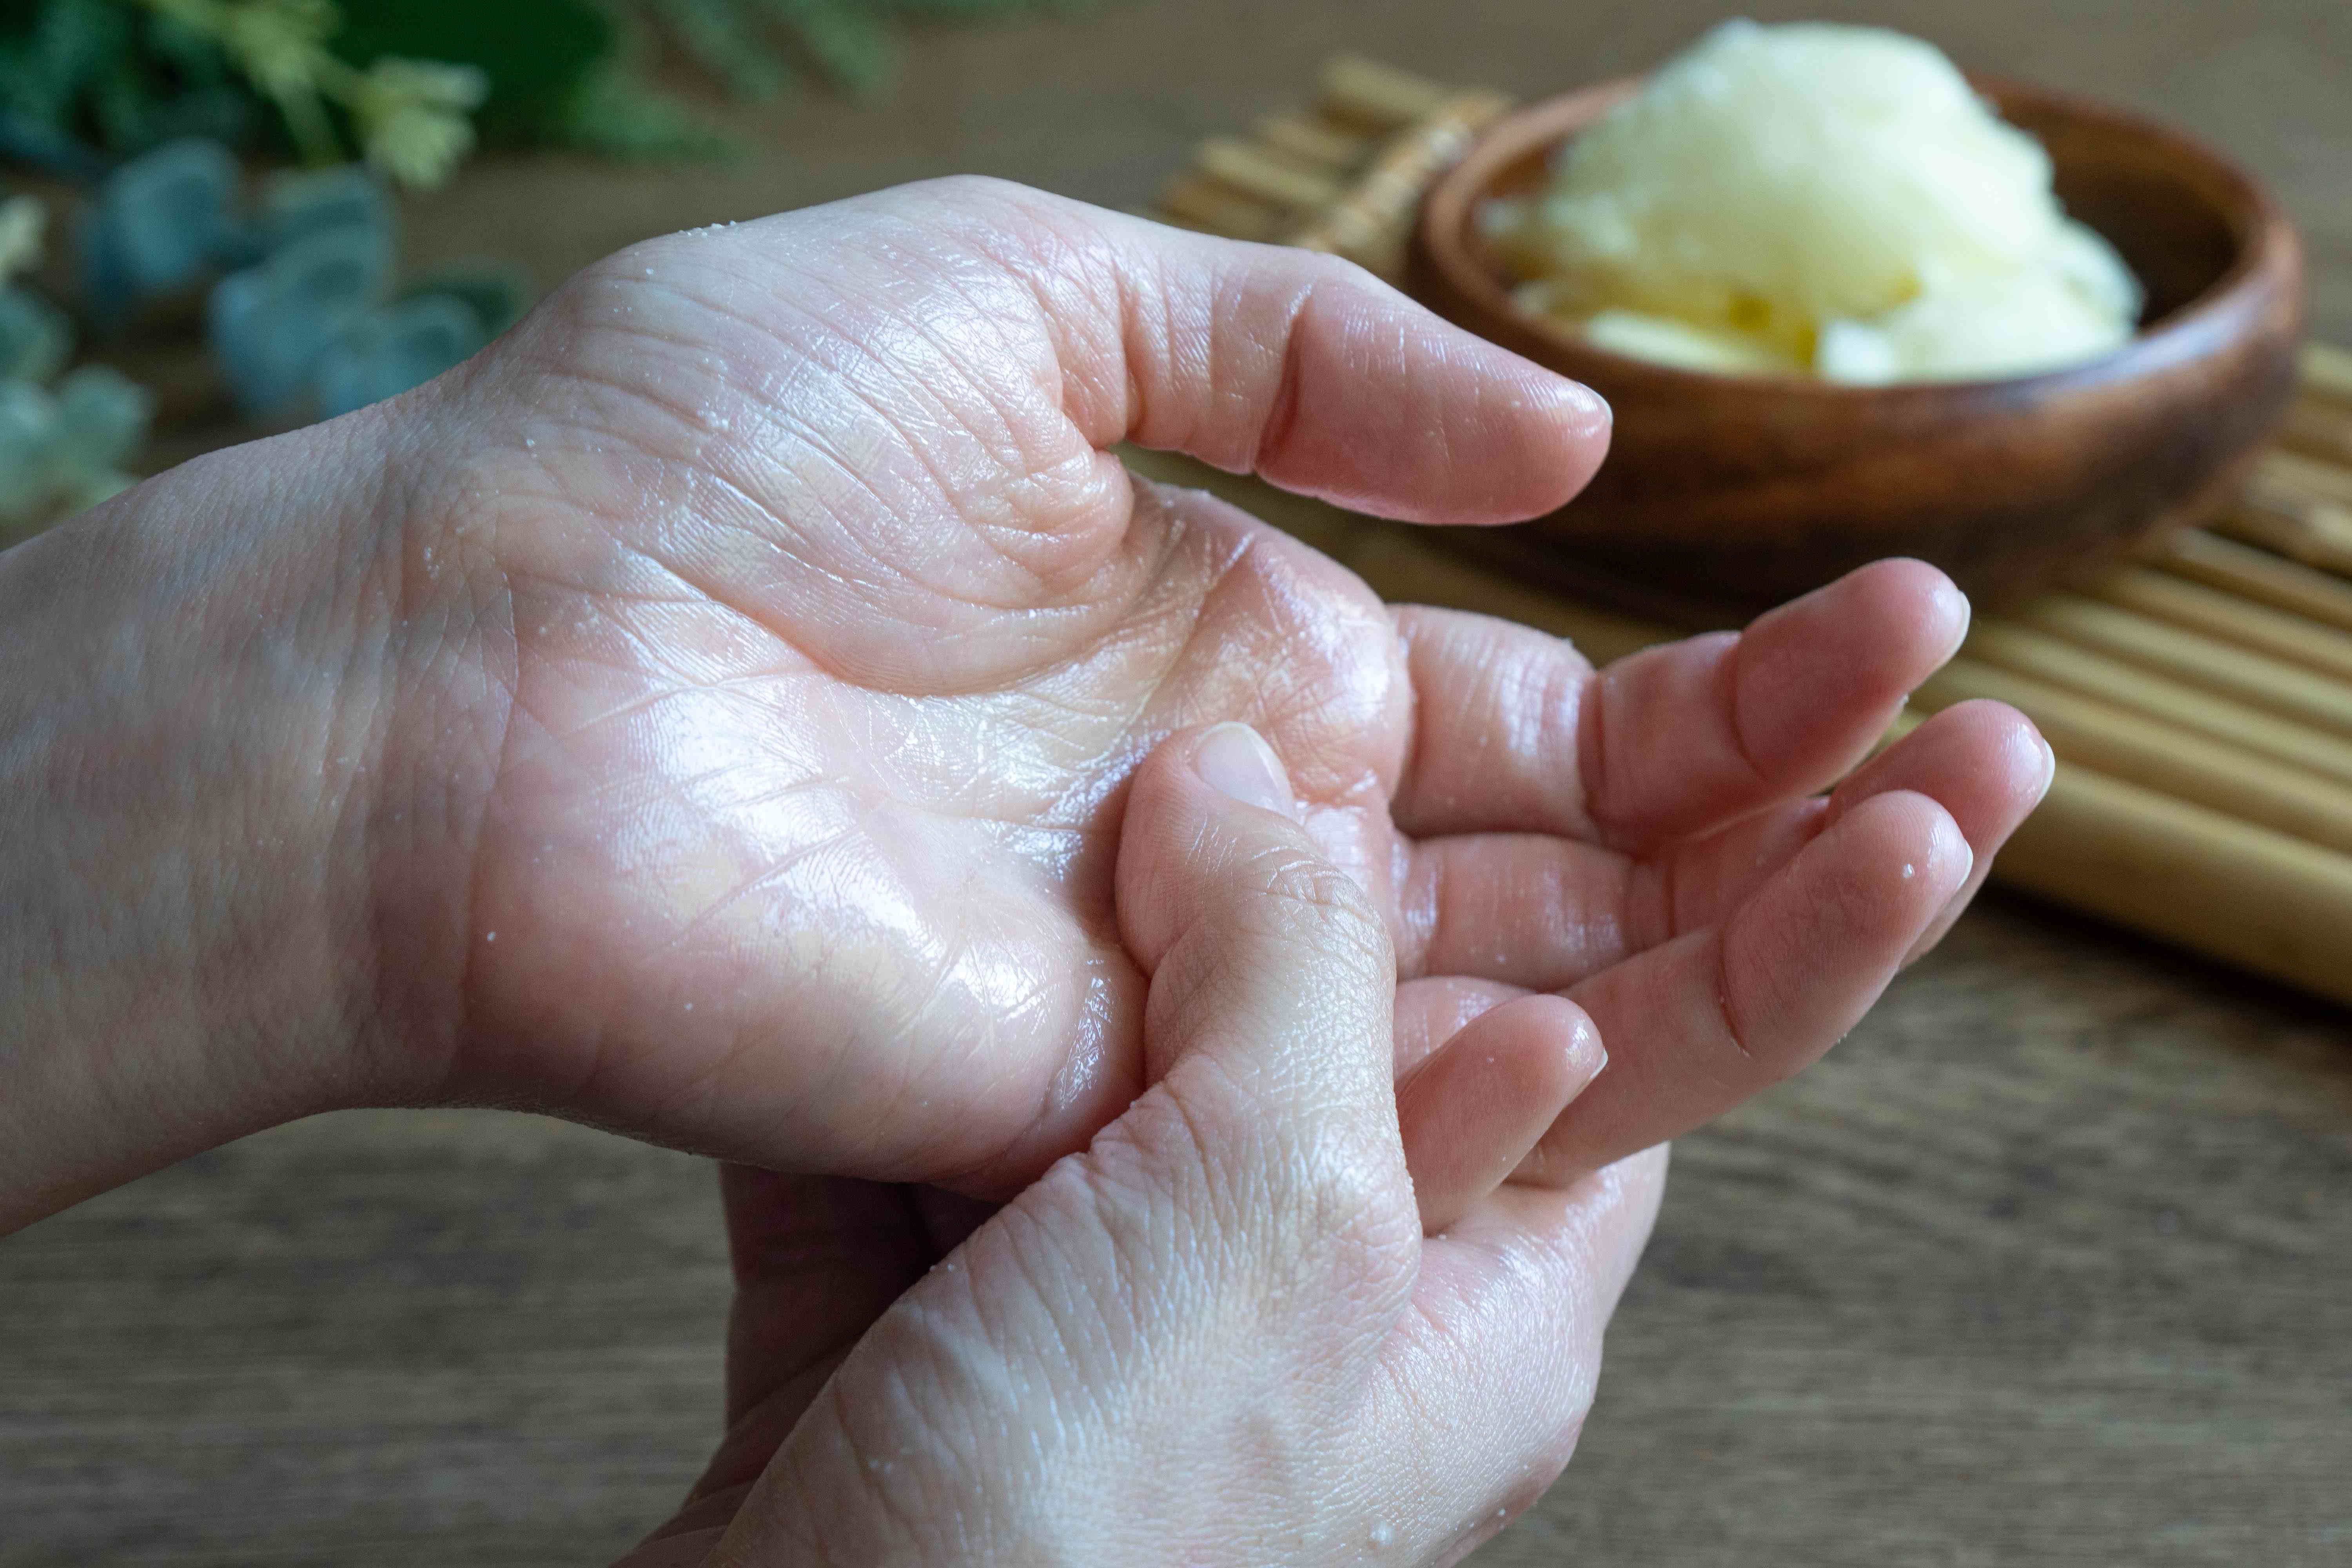 two hands rub shea butter into palm, with wooden bowl of raw shea butter in background